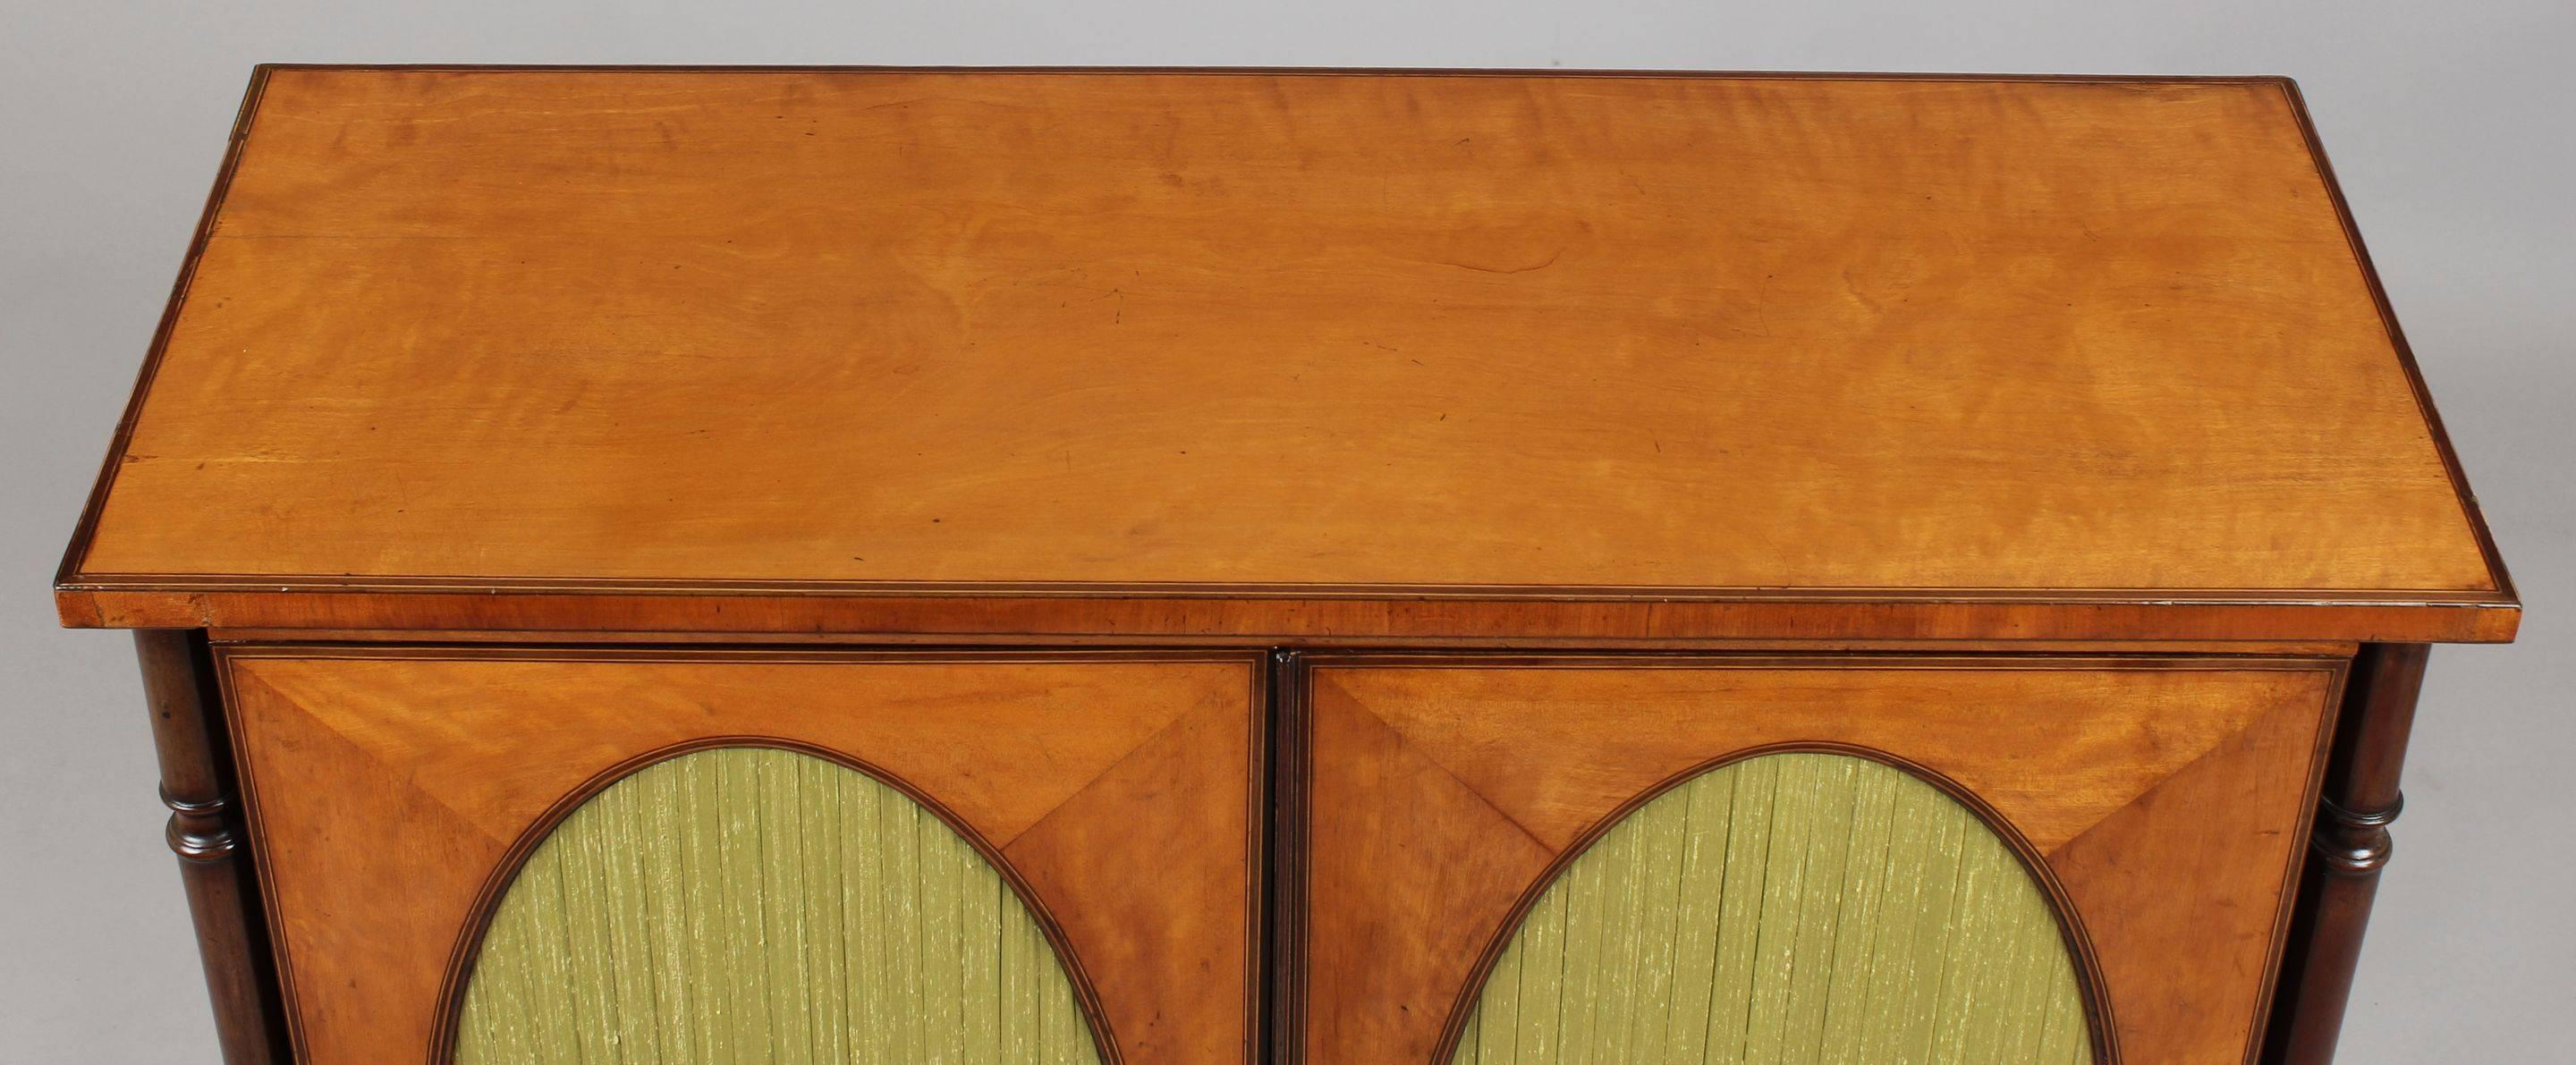 Fine George III Period Satinwood Small Cabinet in the Sheraton Manner